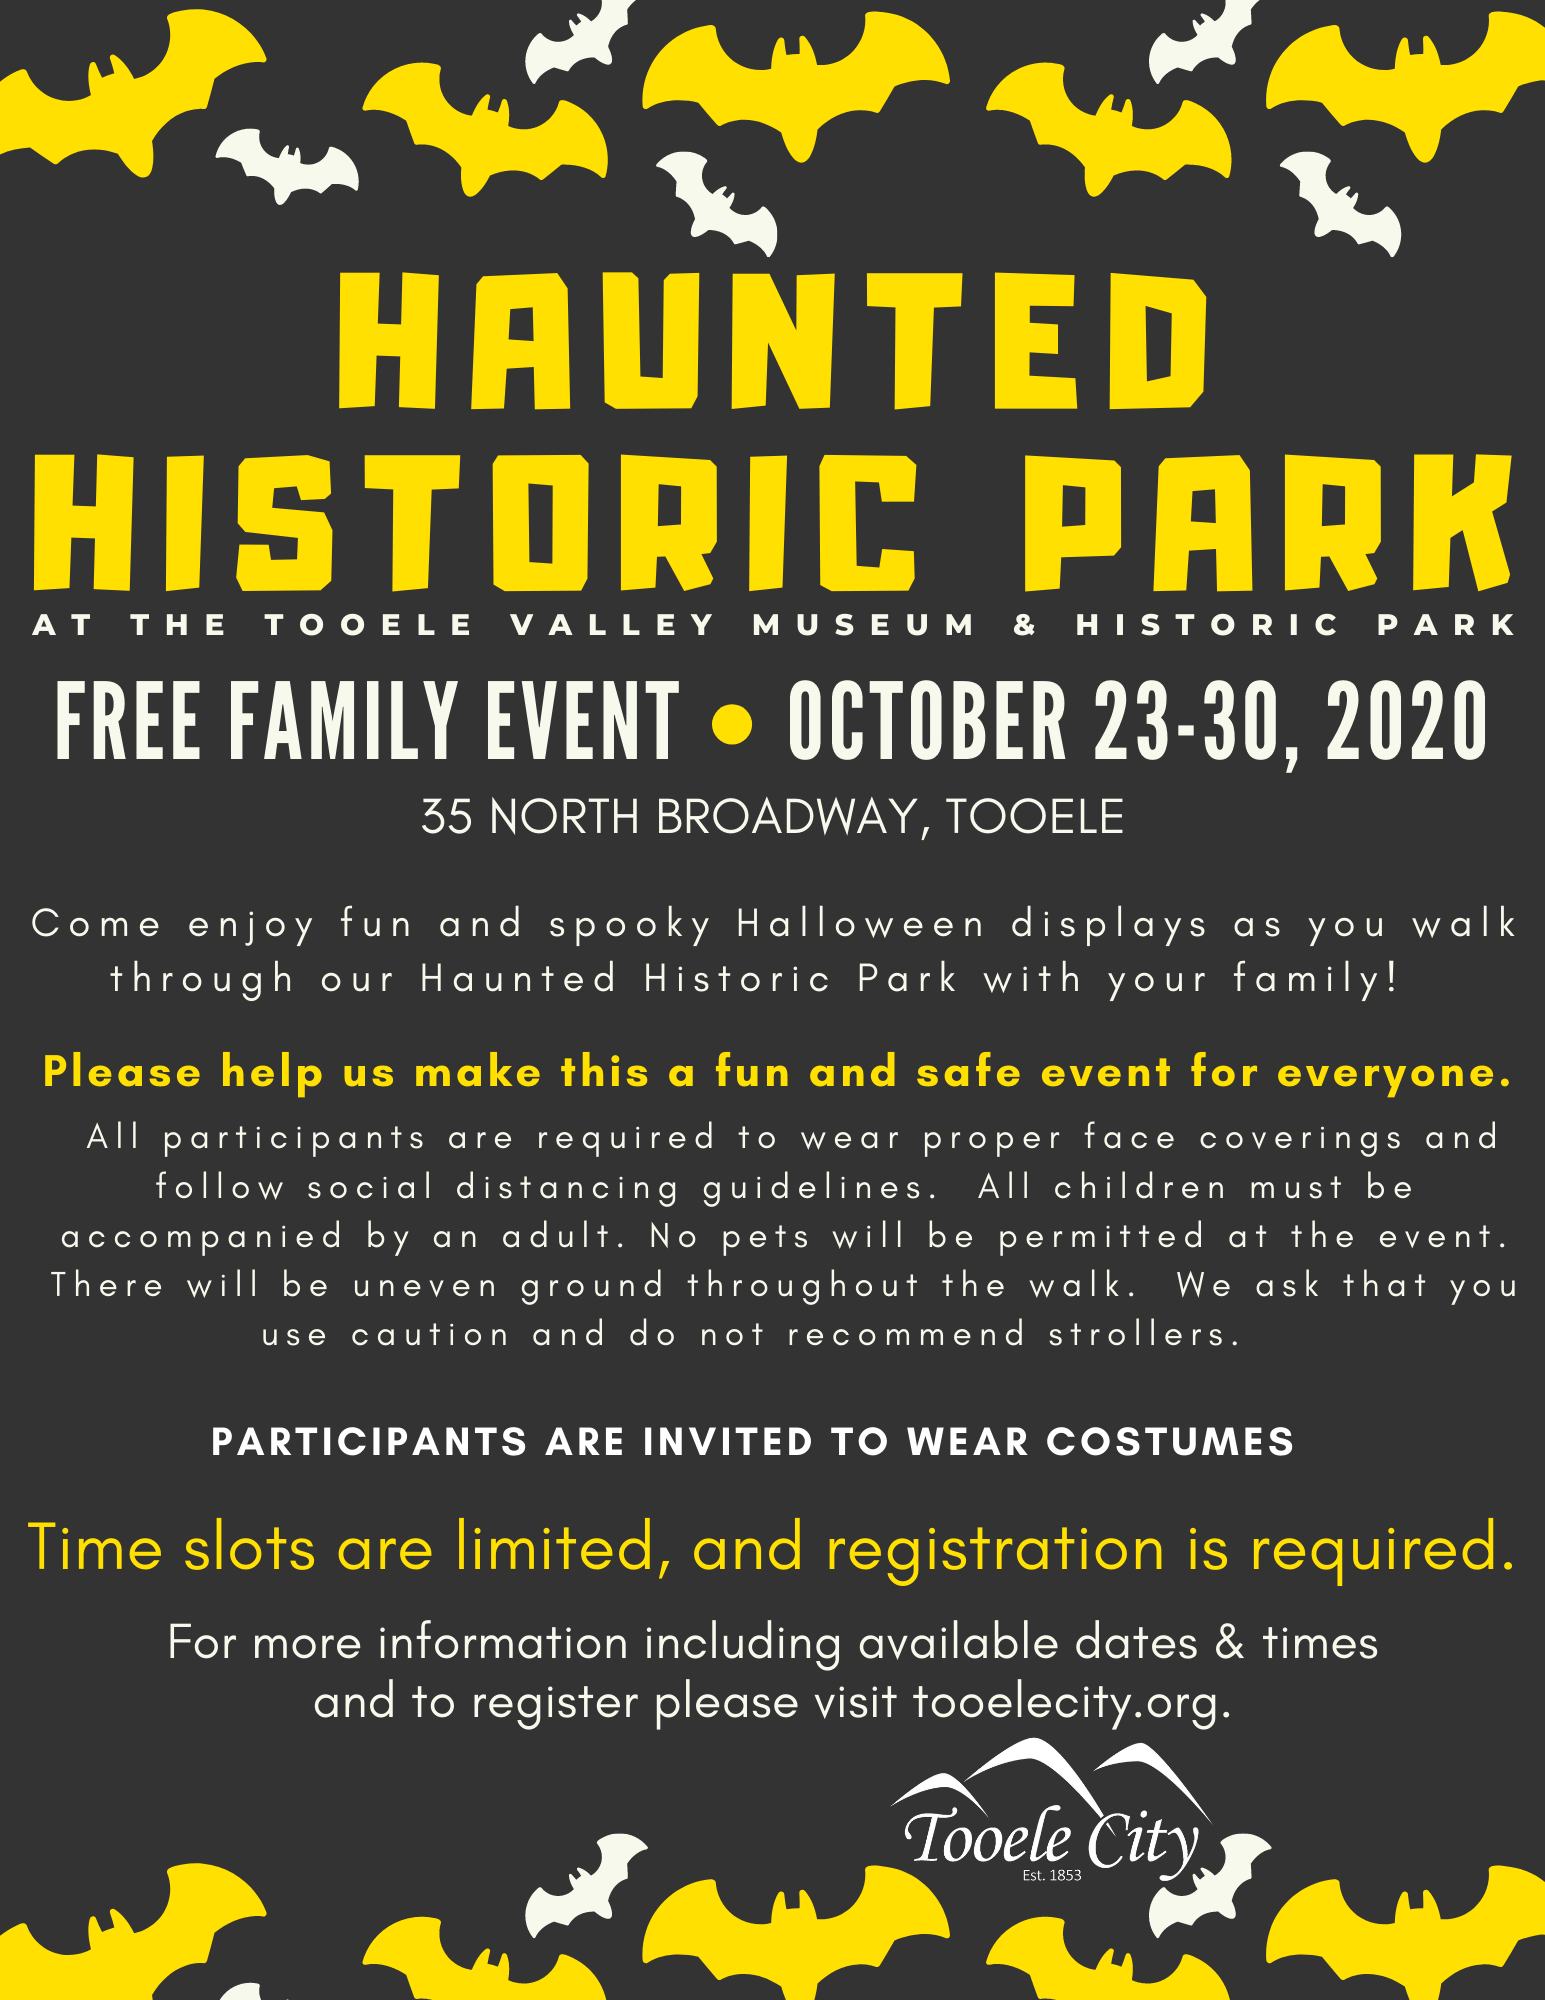 Haunted Historic Park 2020